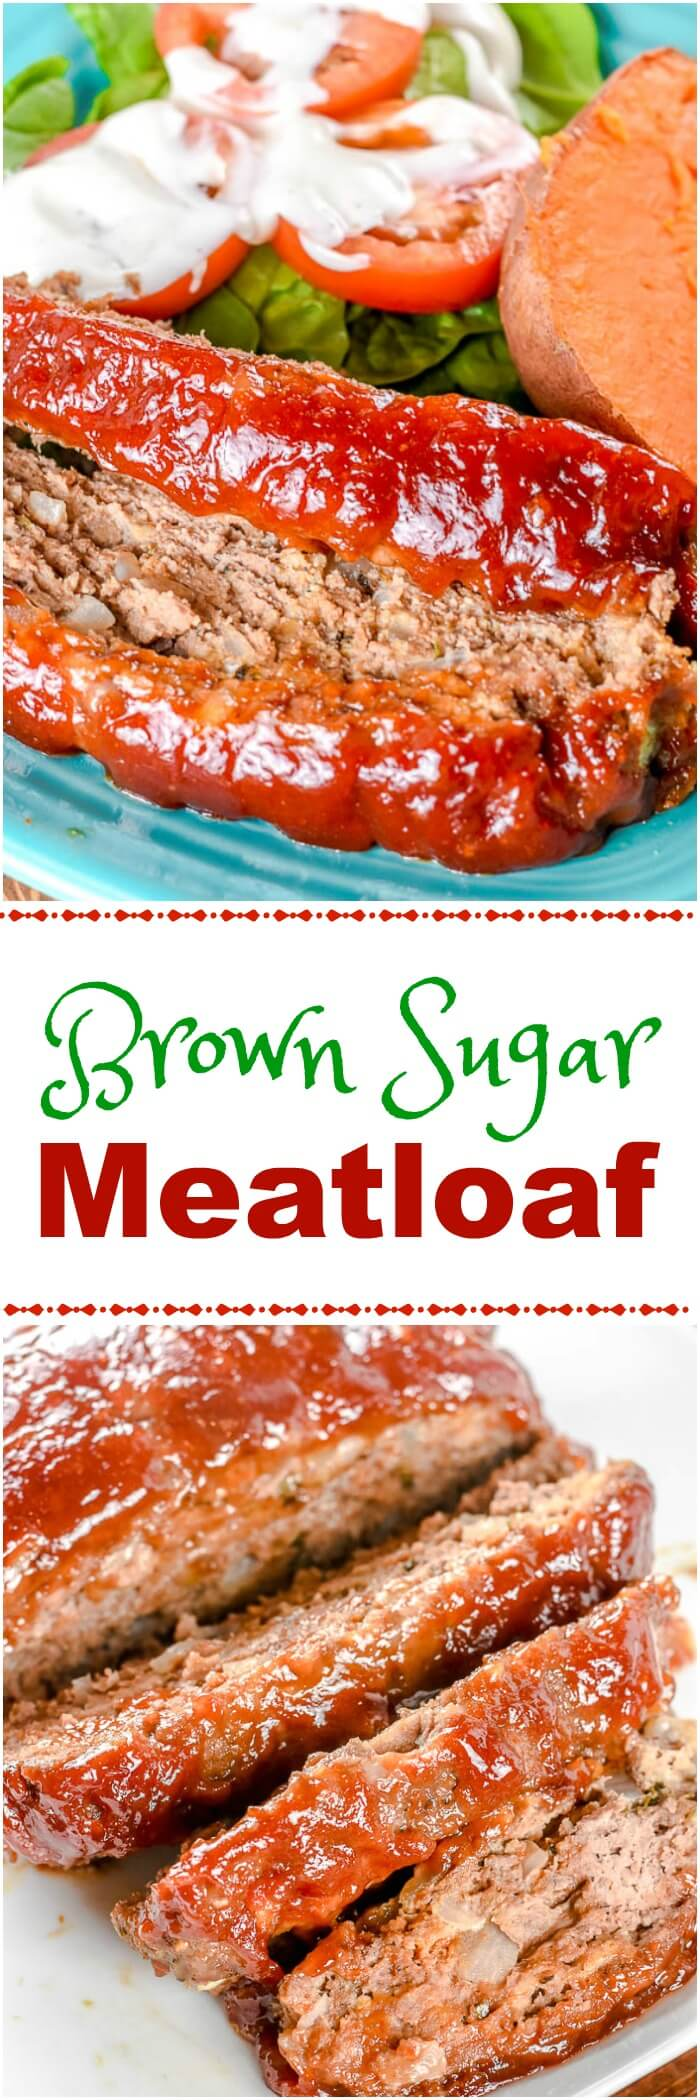 Brown Sugar Meatloaf with Beef